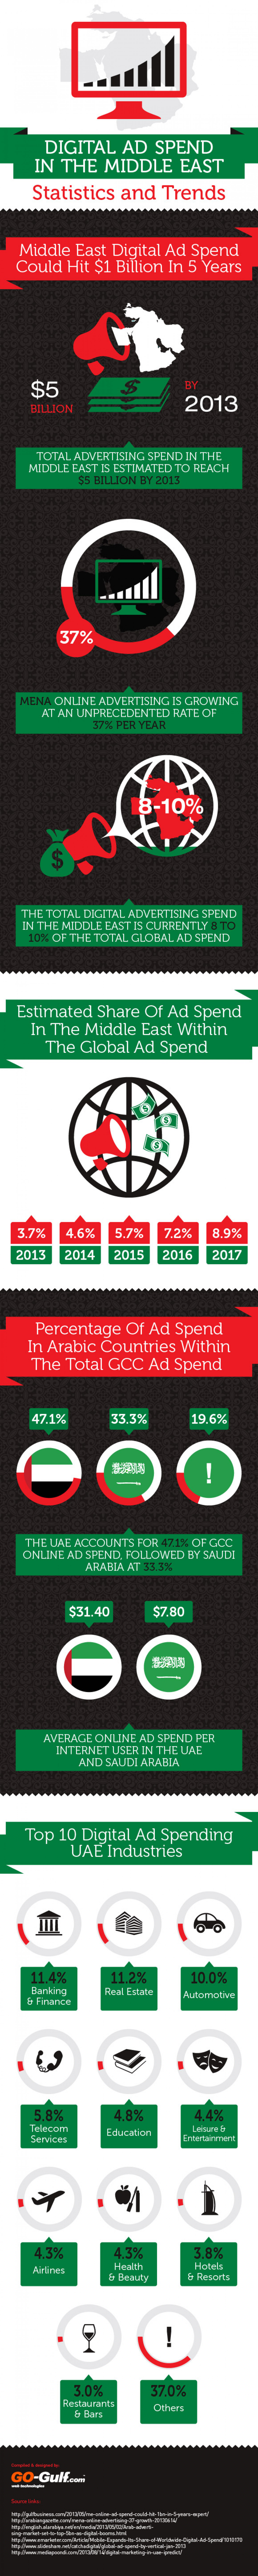 Digital Ad Spend in The Middle East – Statistics and Trends Infographic